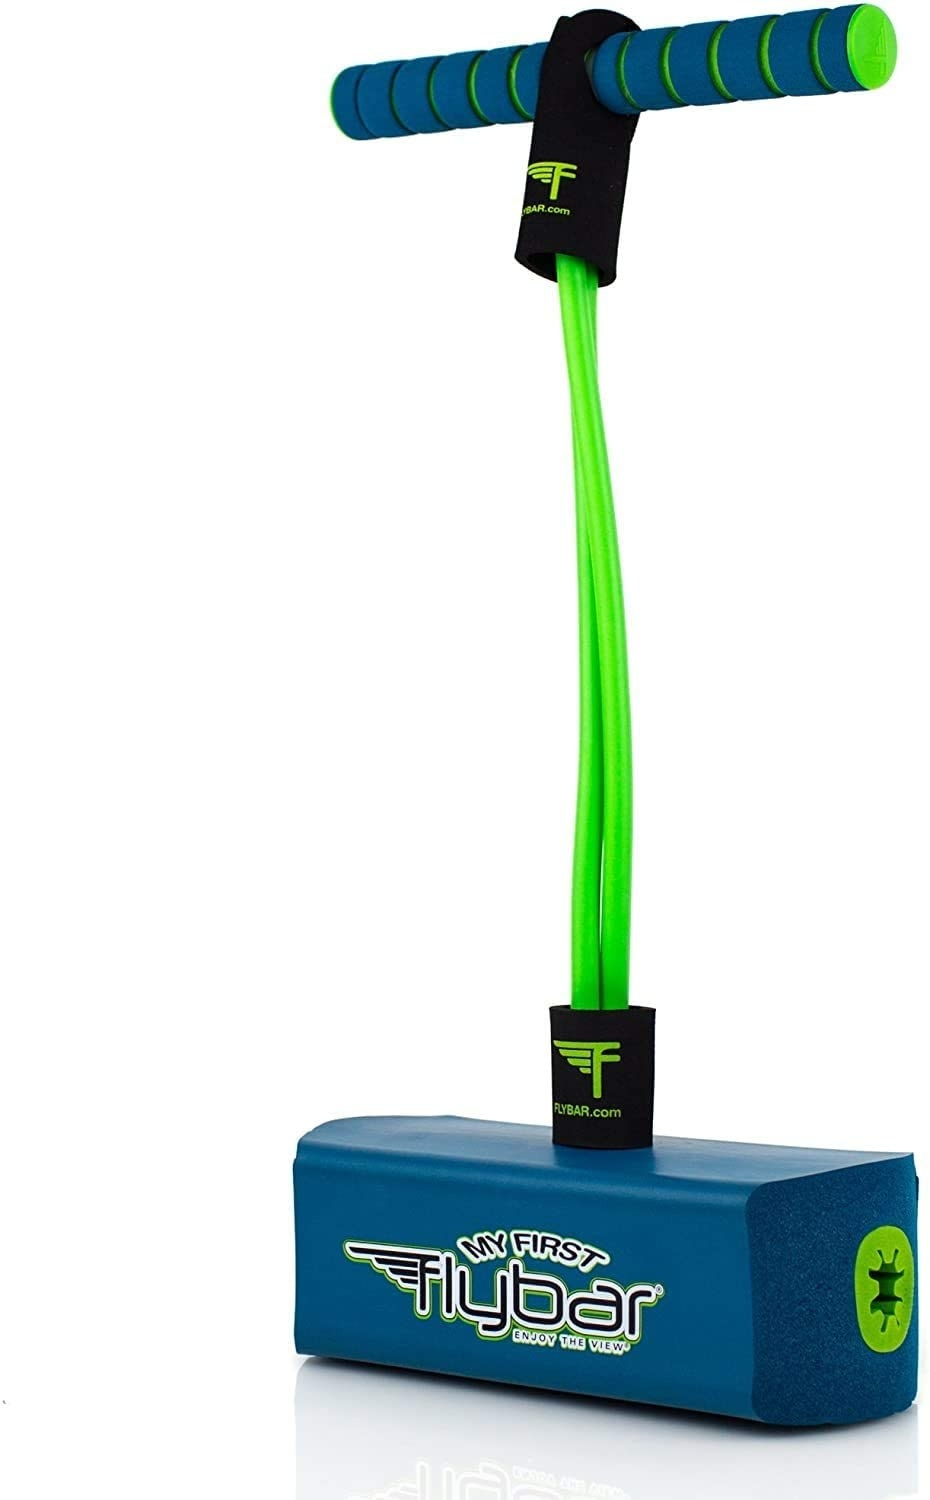 The foam pogo jumper in blue and green